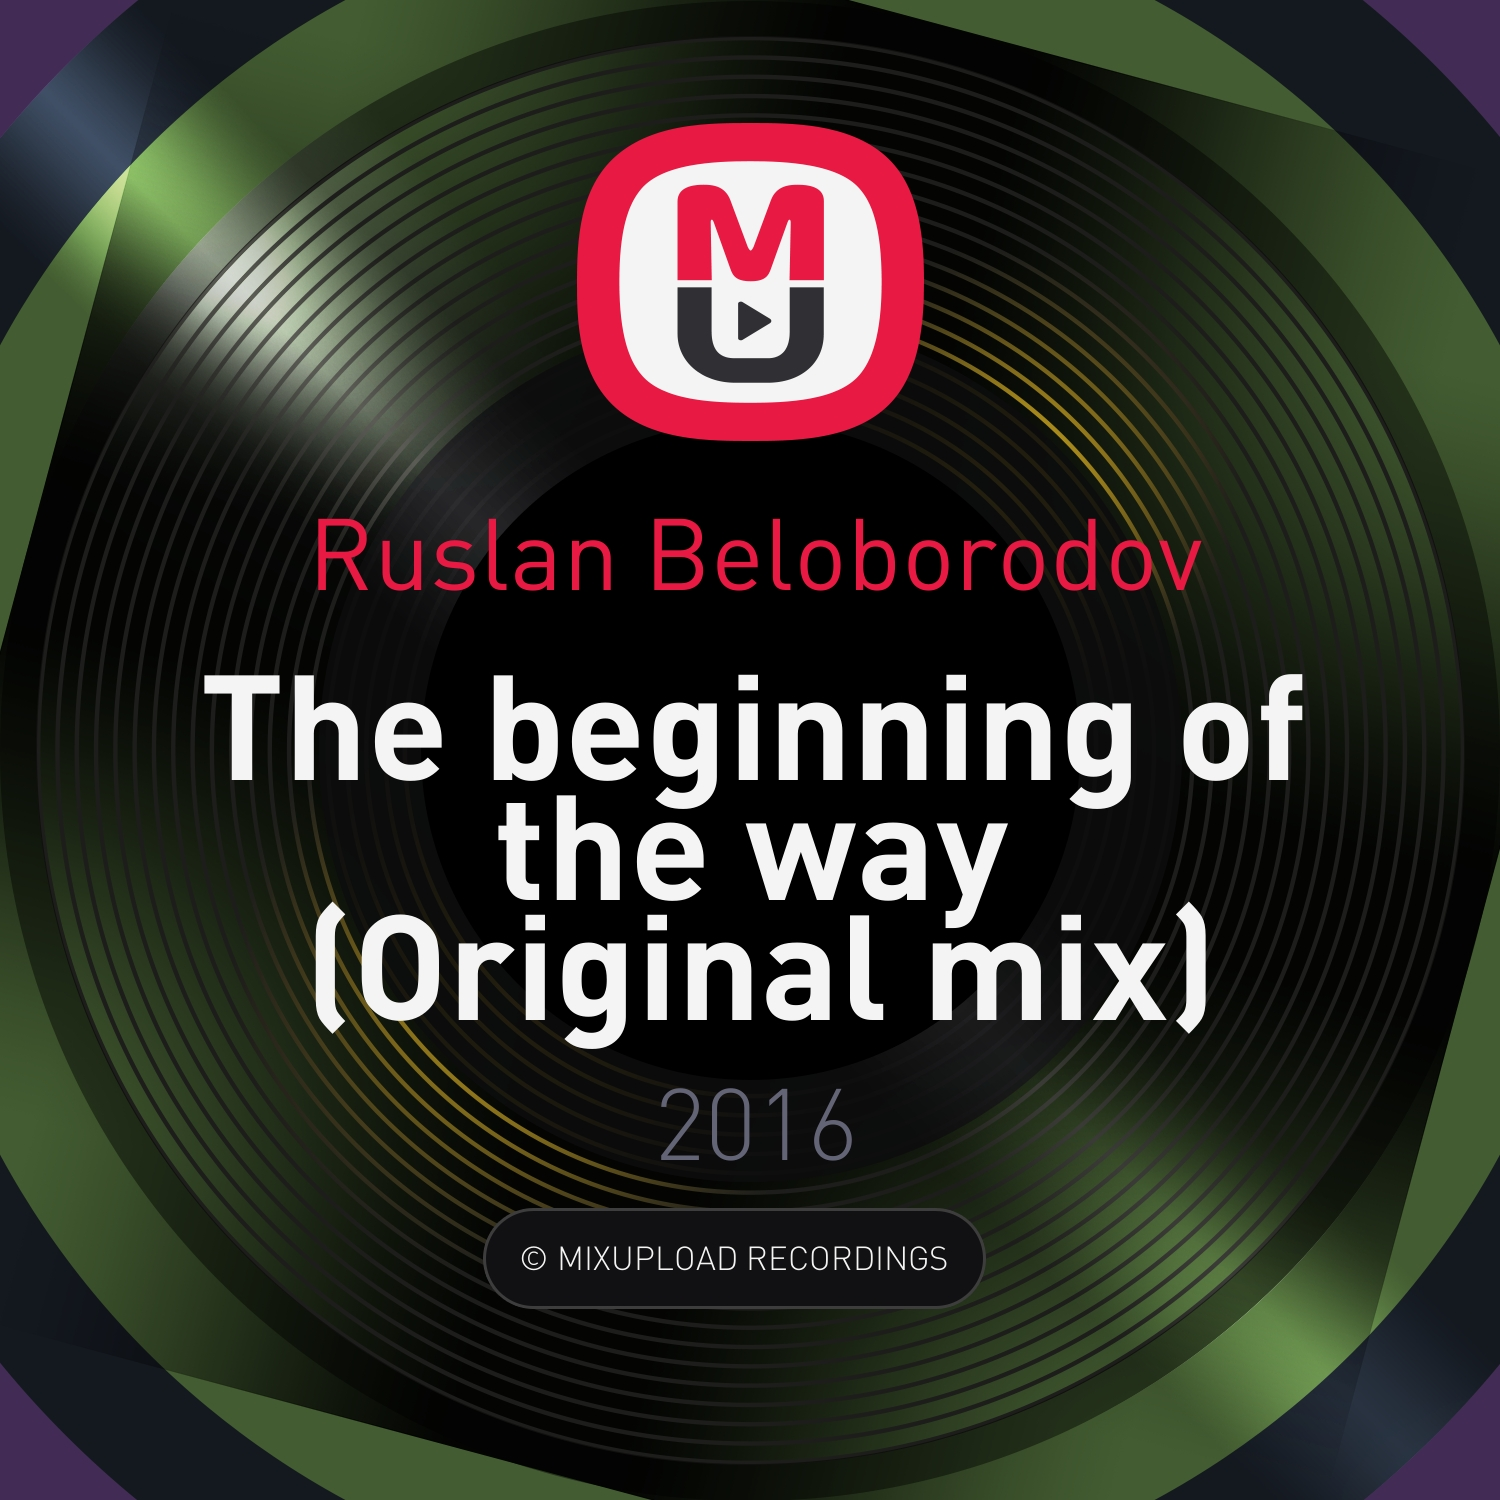 Ruslan Beloborodov - The beginning of the way (Original mix)